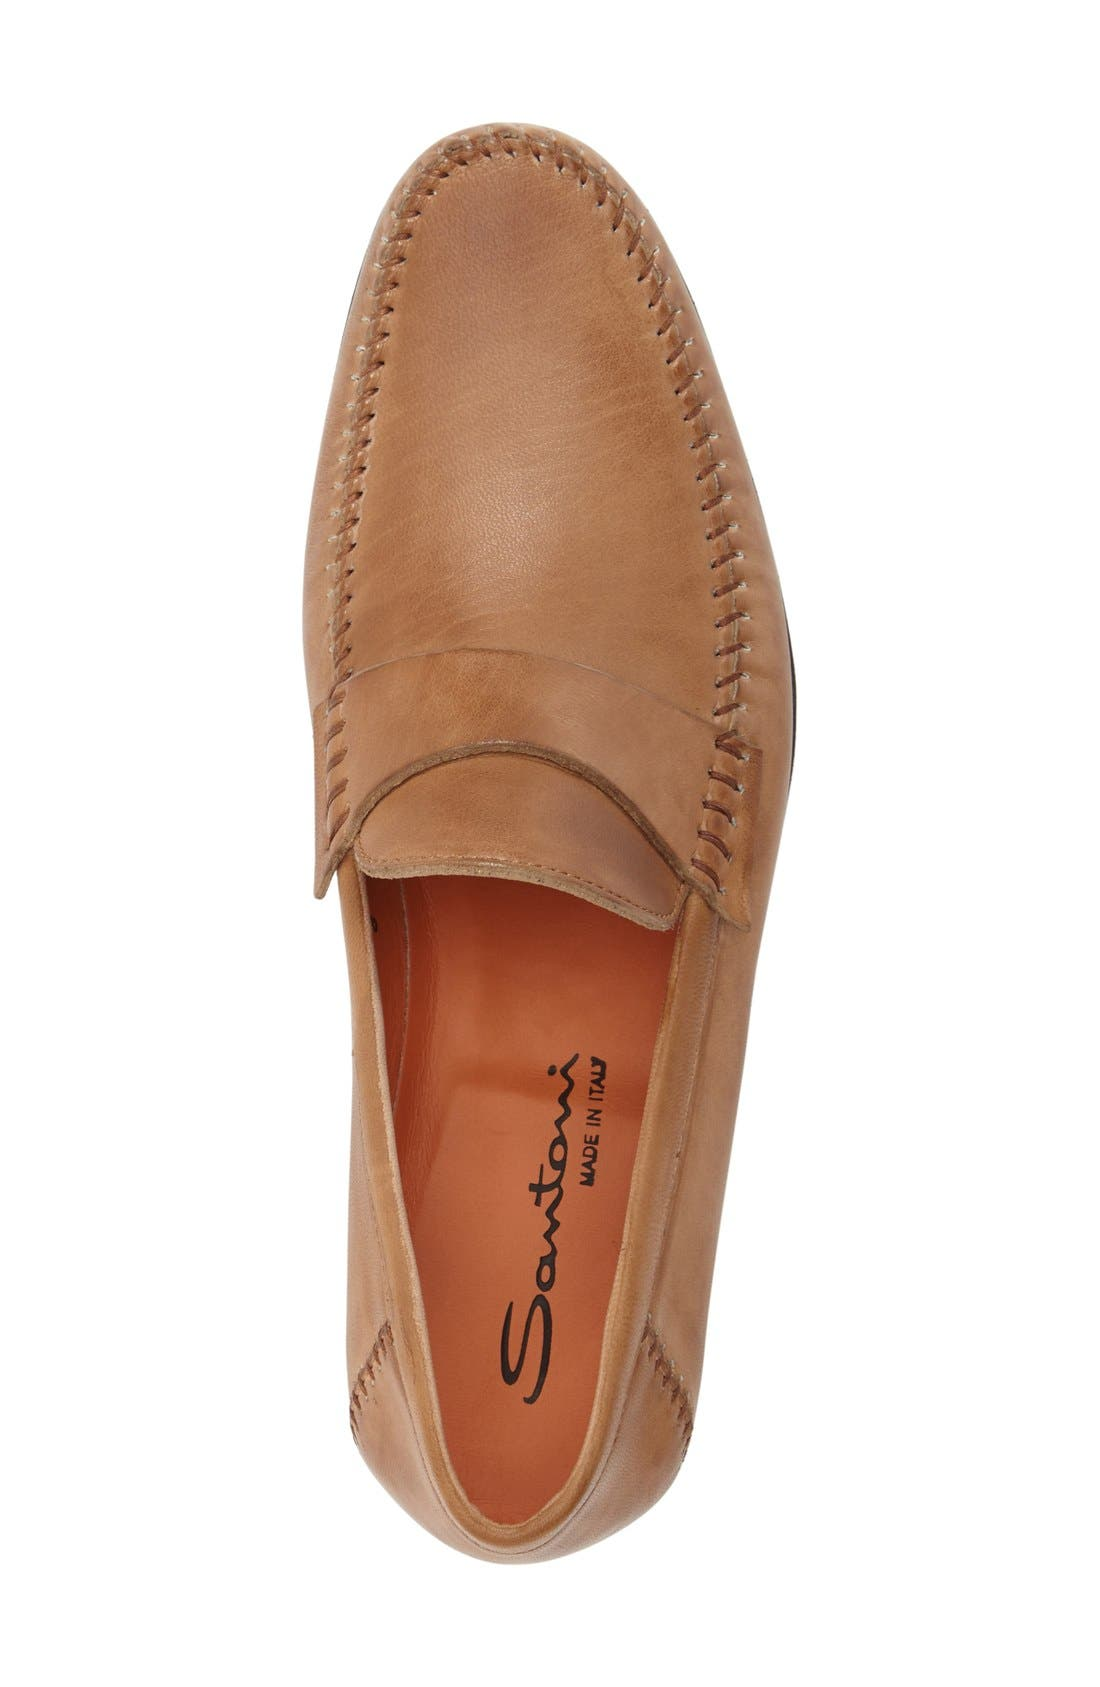 'Paine' Leather Loafer,                             Alternate thumbnail 3, color,                             260